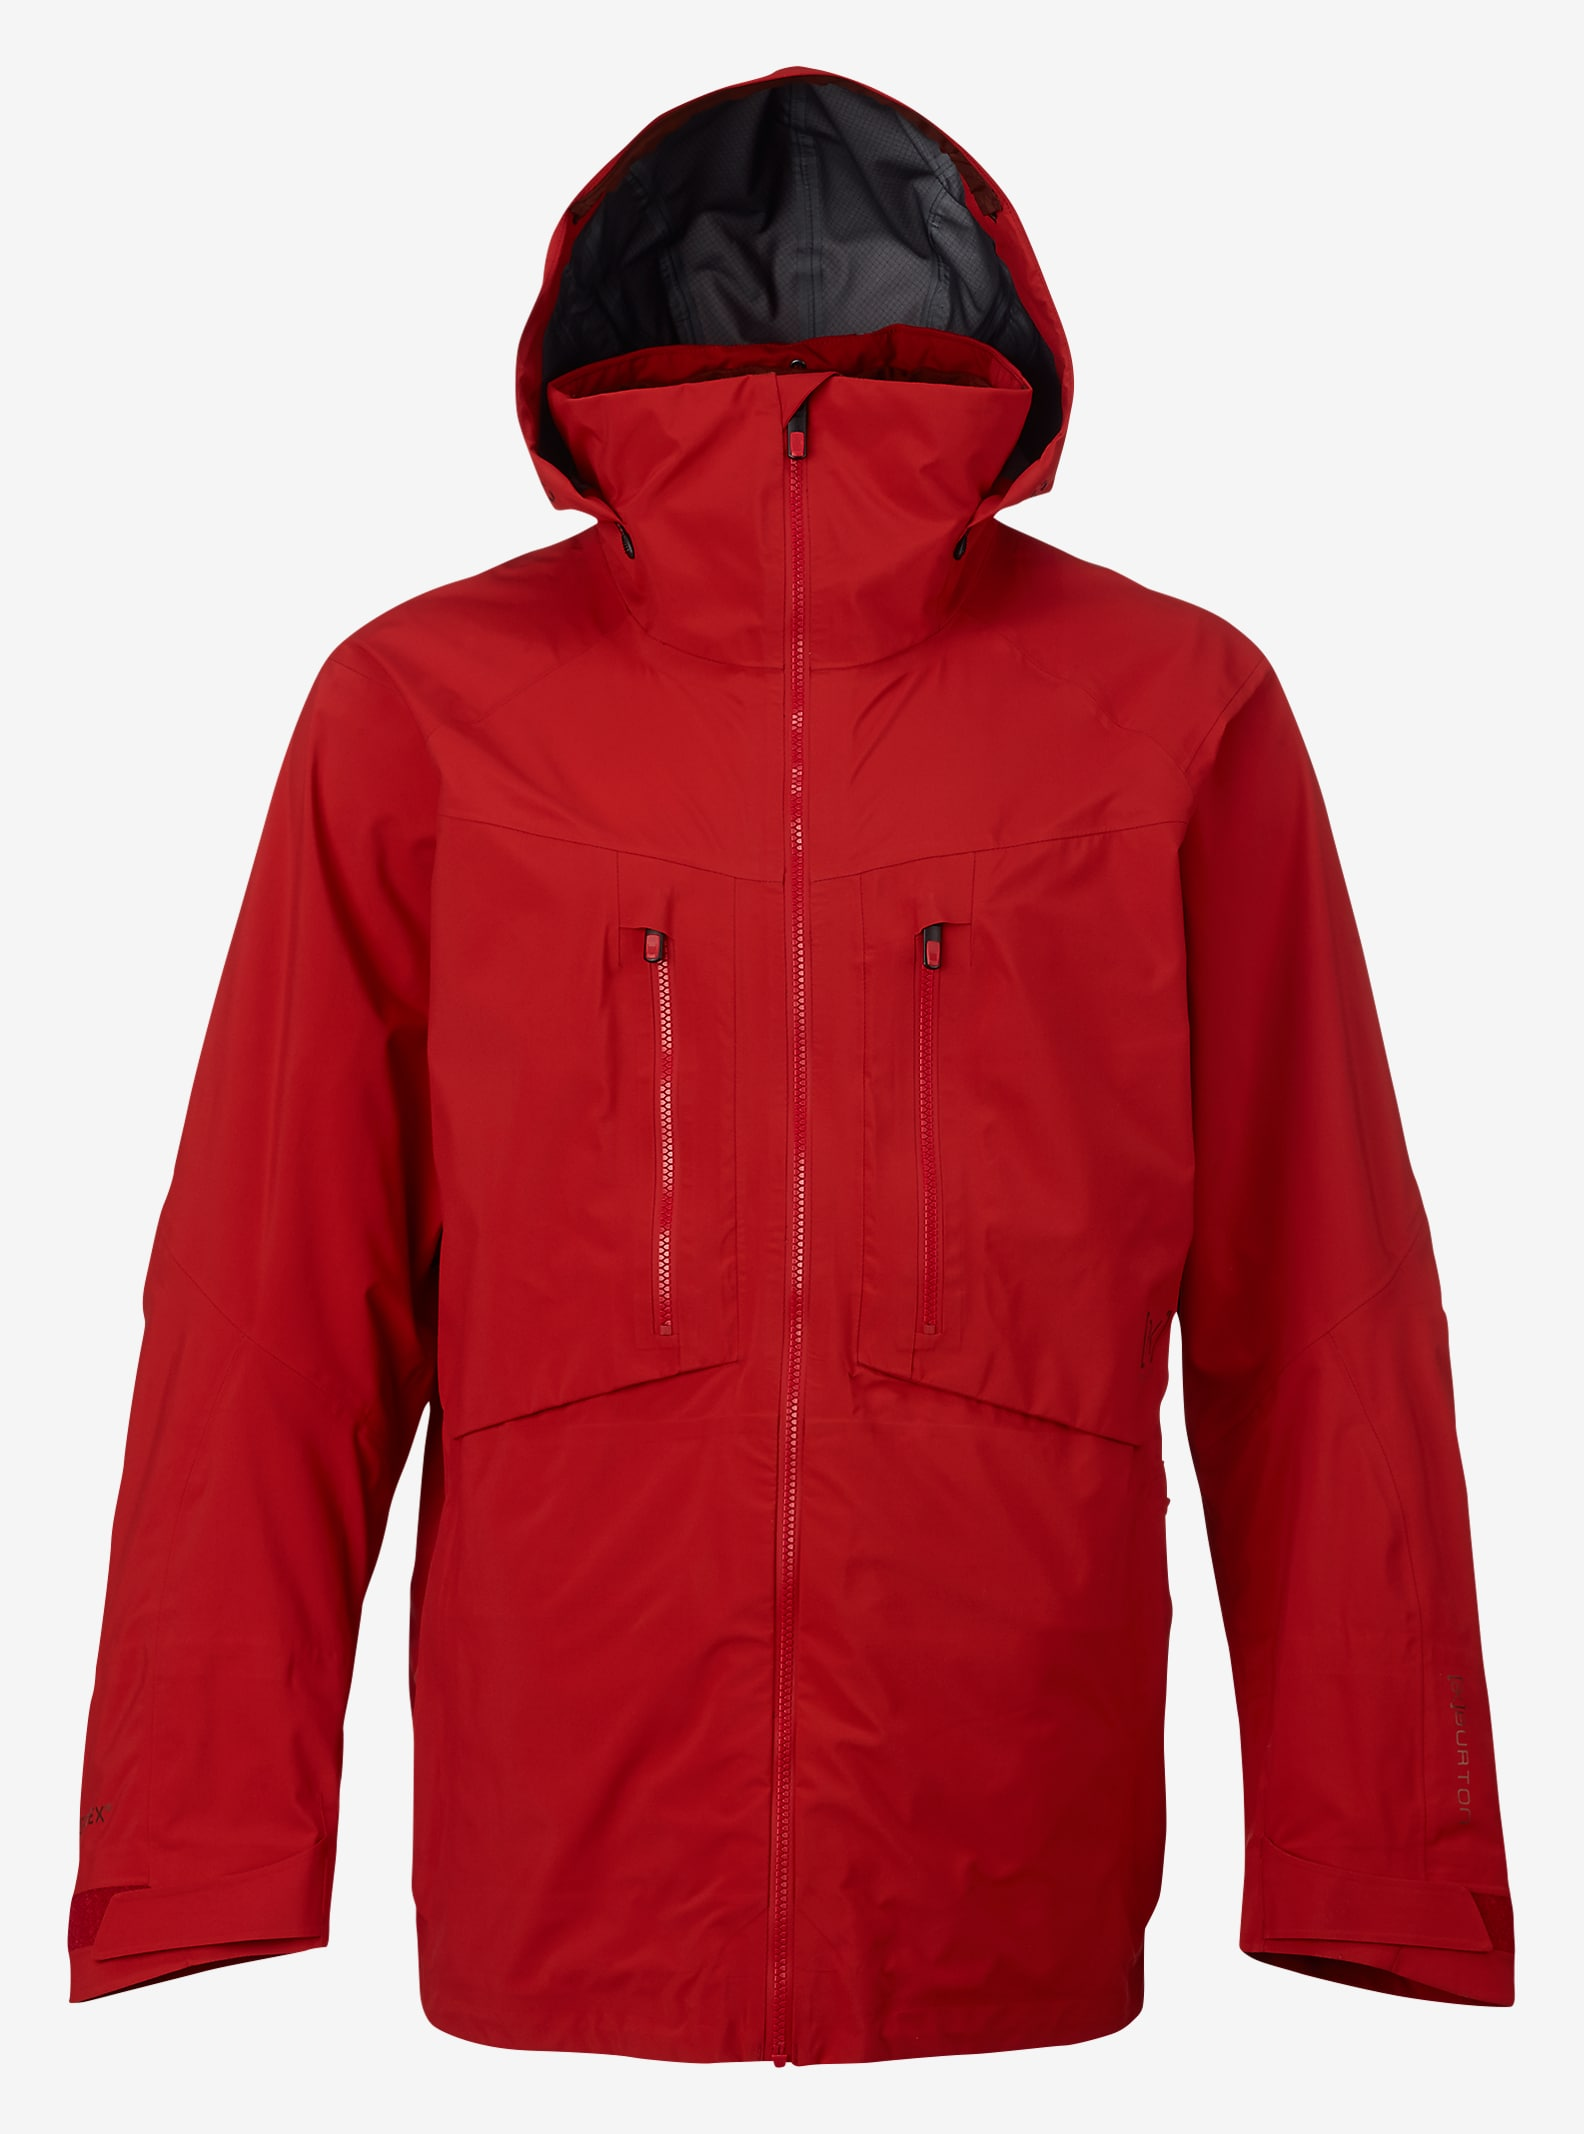 Burton [ak] 3L Hover Jacket shown in Gringo